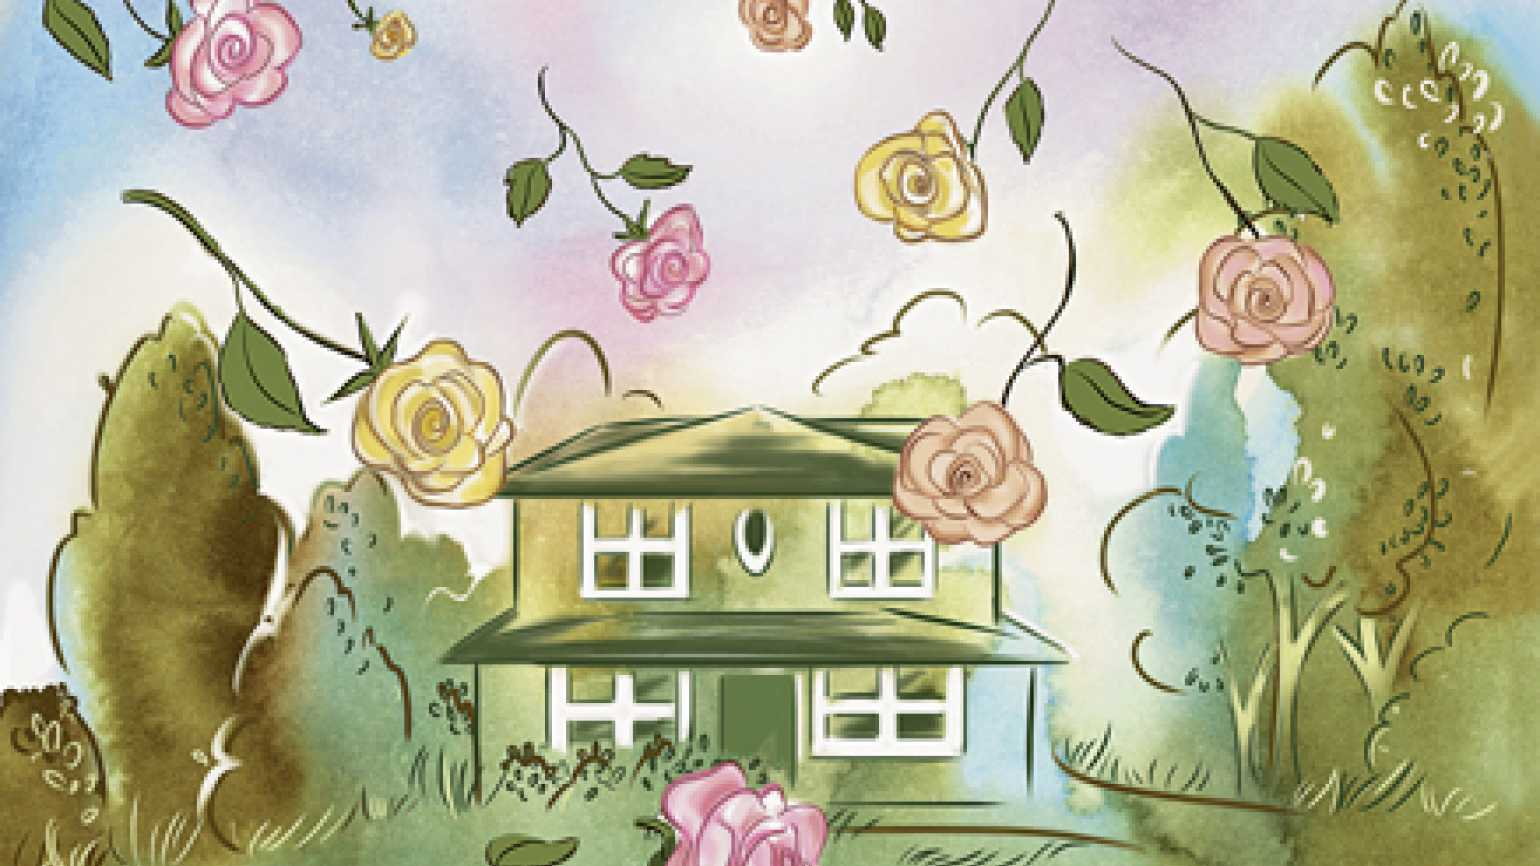 An artist's rendering of a house being showered by roses